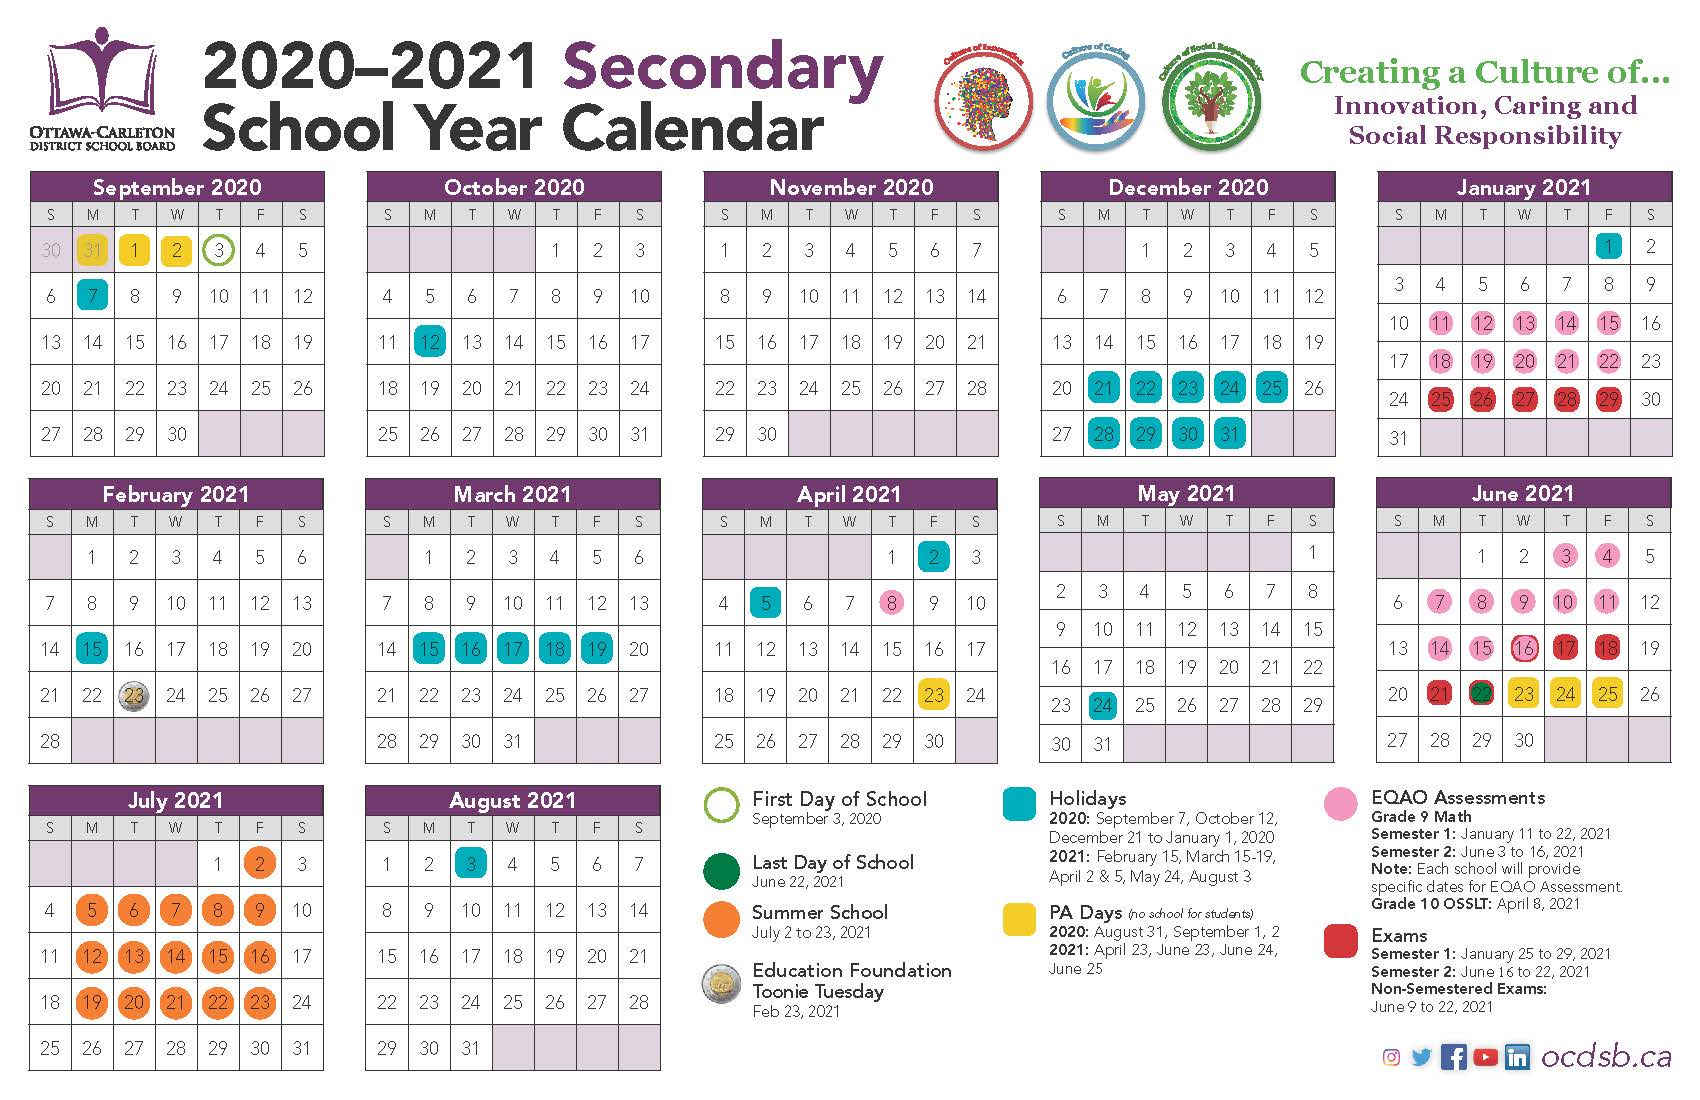 2020-2021 School Year Calendar Approvedthe Ministry